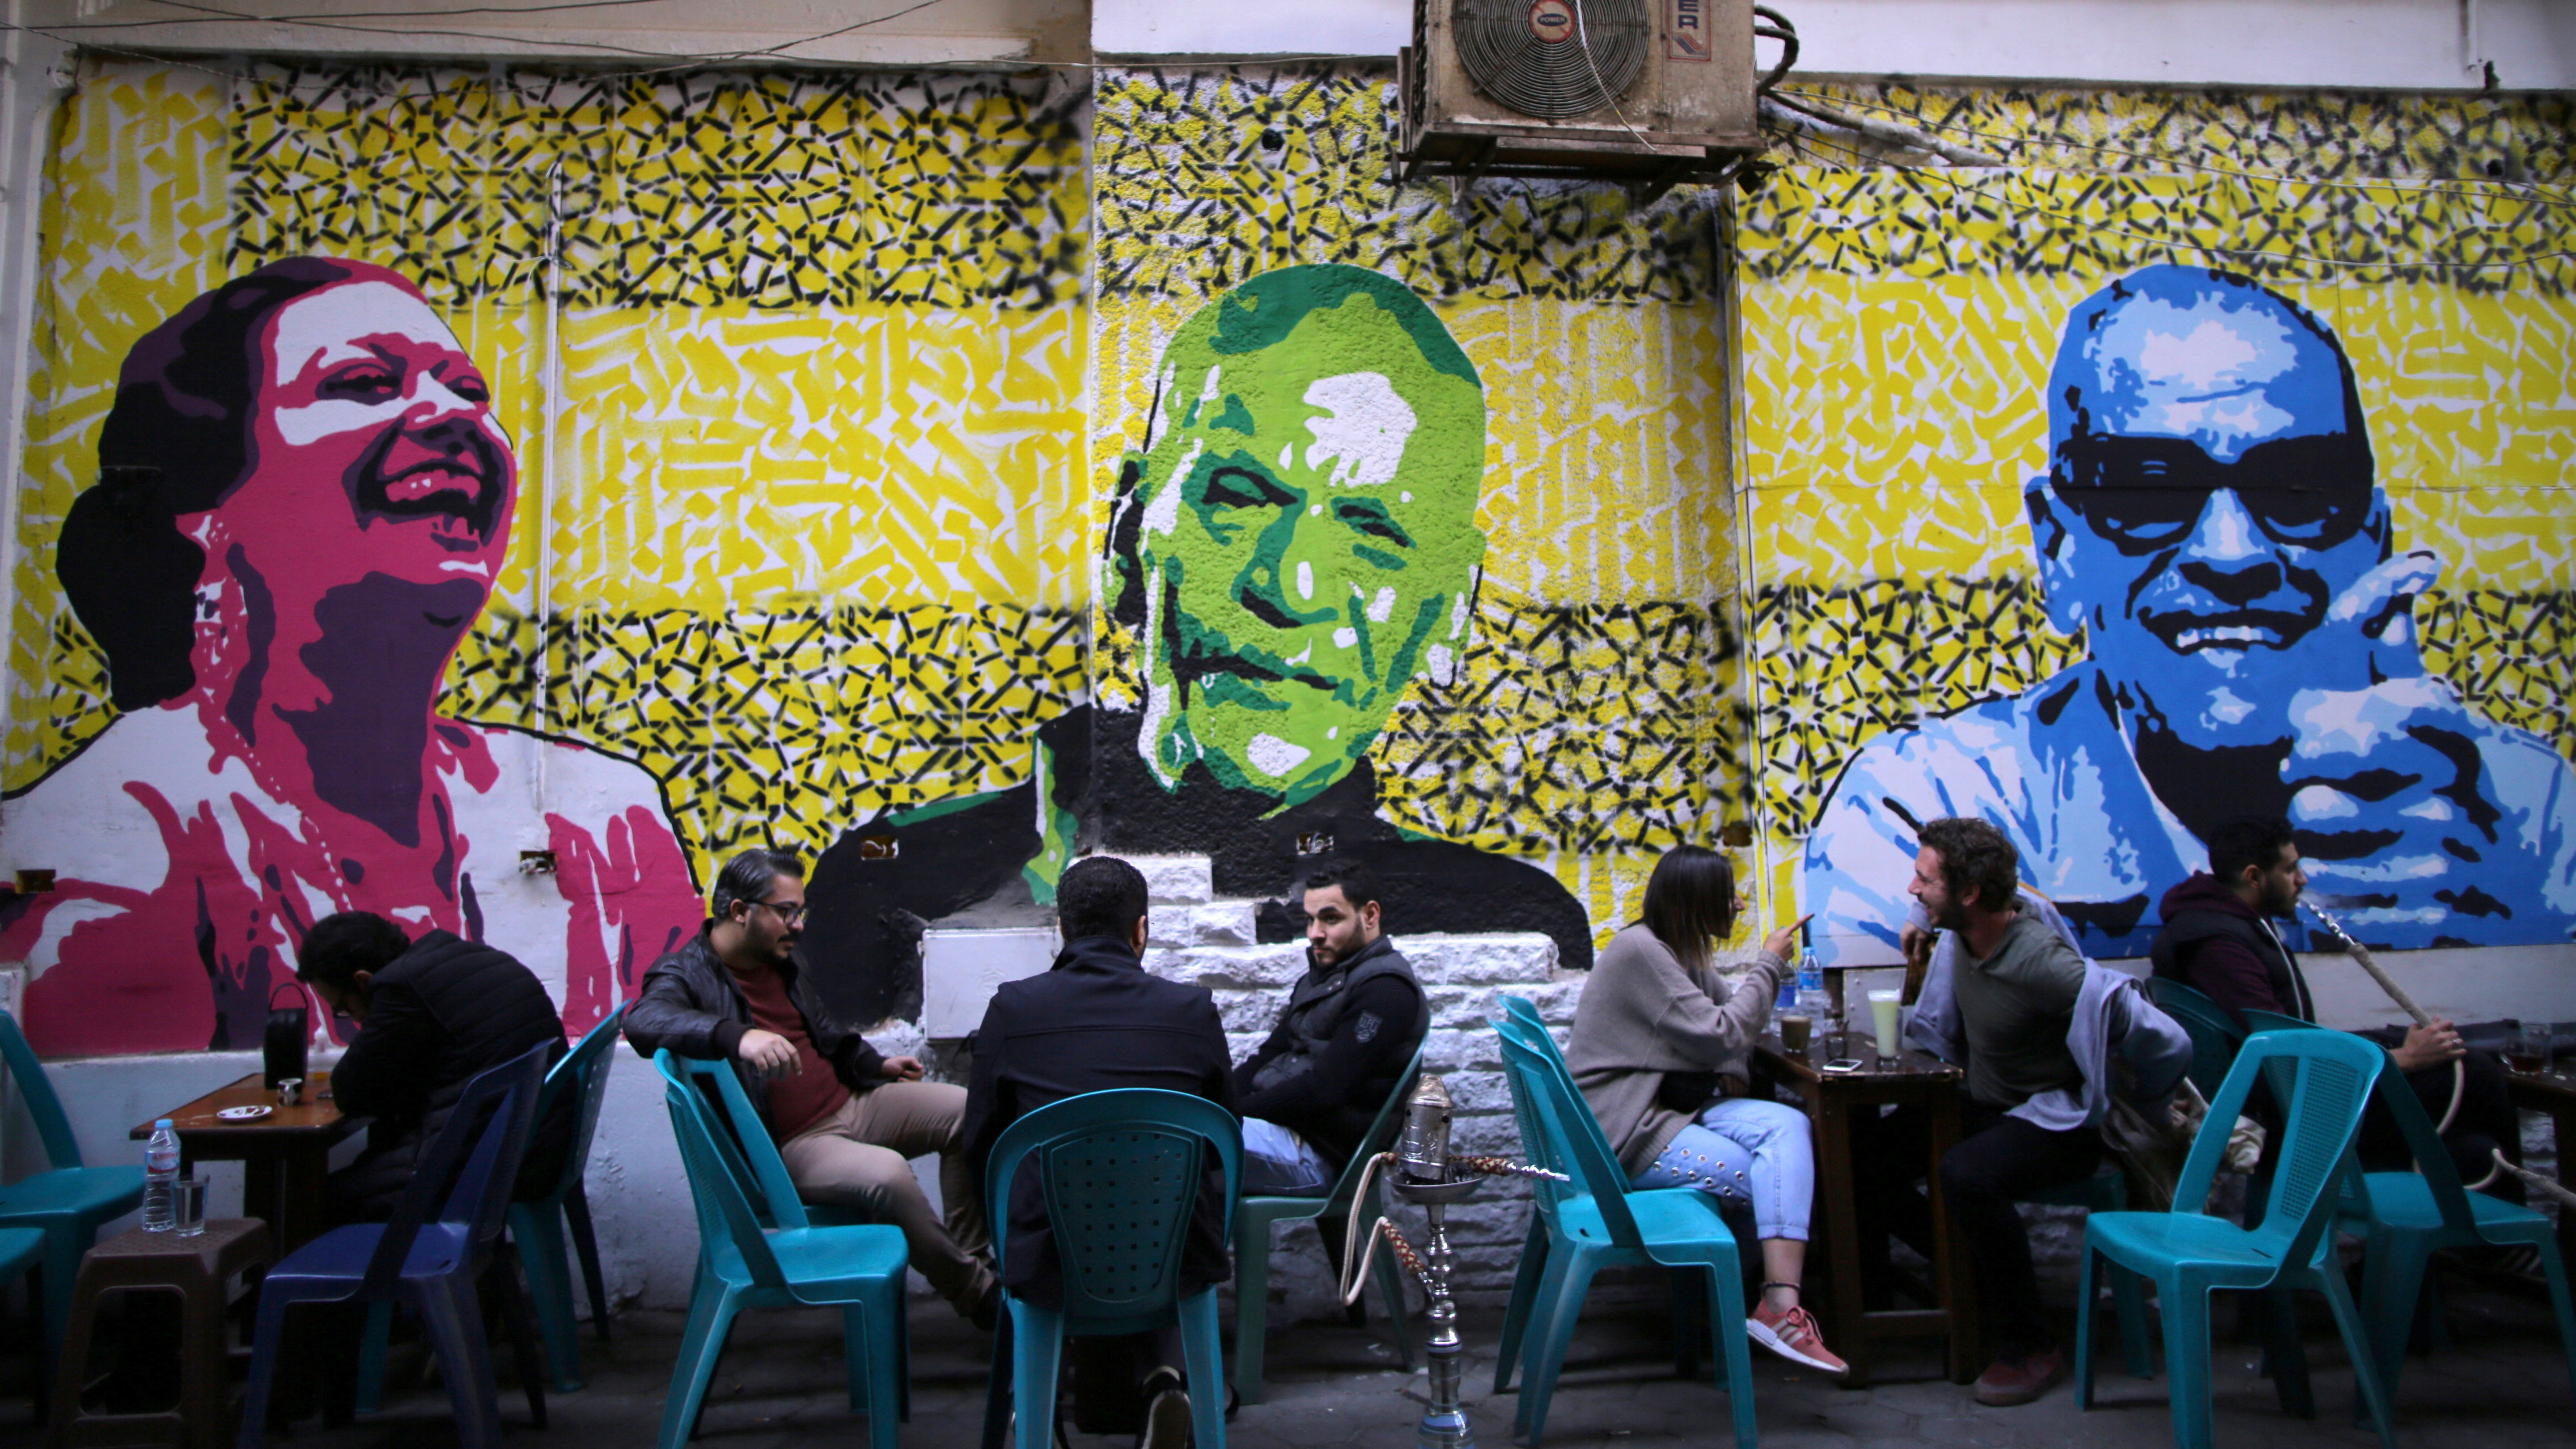 Egyptians sit at a street coffee shop around murals of Egyptian characters and symbols downtown in the capital of Cairo, Egypt January 16, 2018. REUTERS/Amr Abdallah Dalsh NO RESALES. NO ARCHIVES - RC1D720314B0